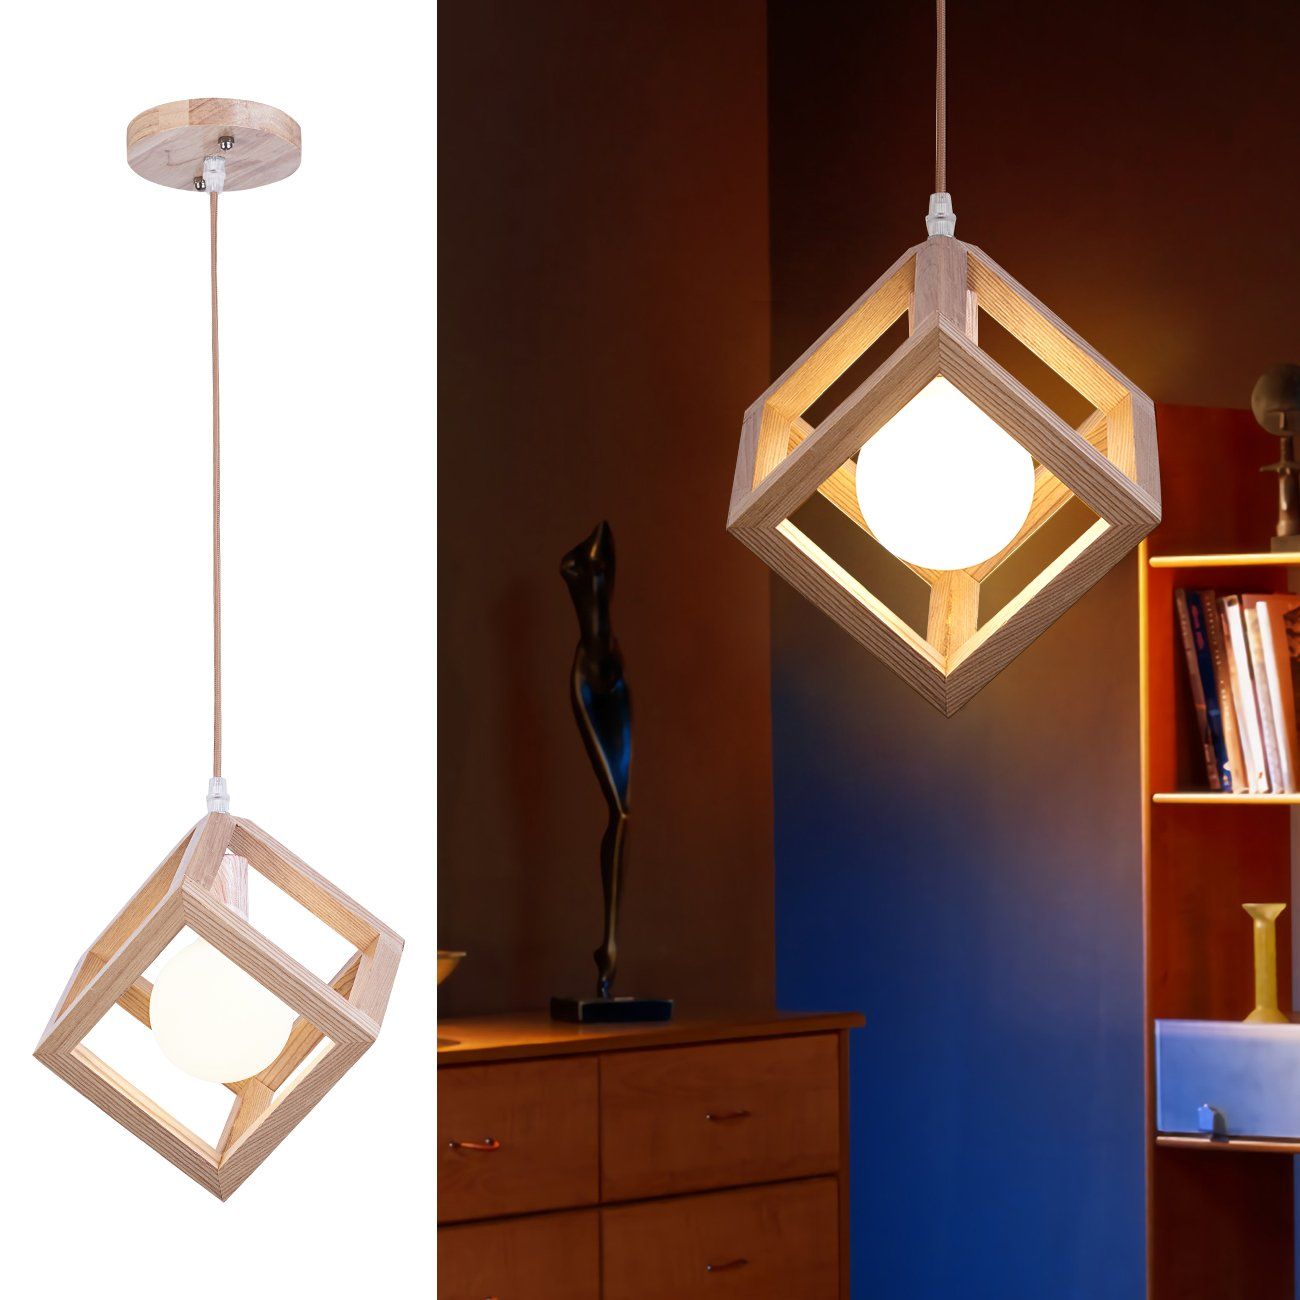 mingdaxin Woodiness Pendant Light,Contemporary DIY Hanging Lamp Hangs Illume,Adjust Suspension Height Ceiling Light, Apply To Bedroom, Dining-Room, Sitting Room And Kitchen